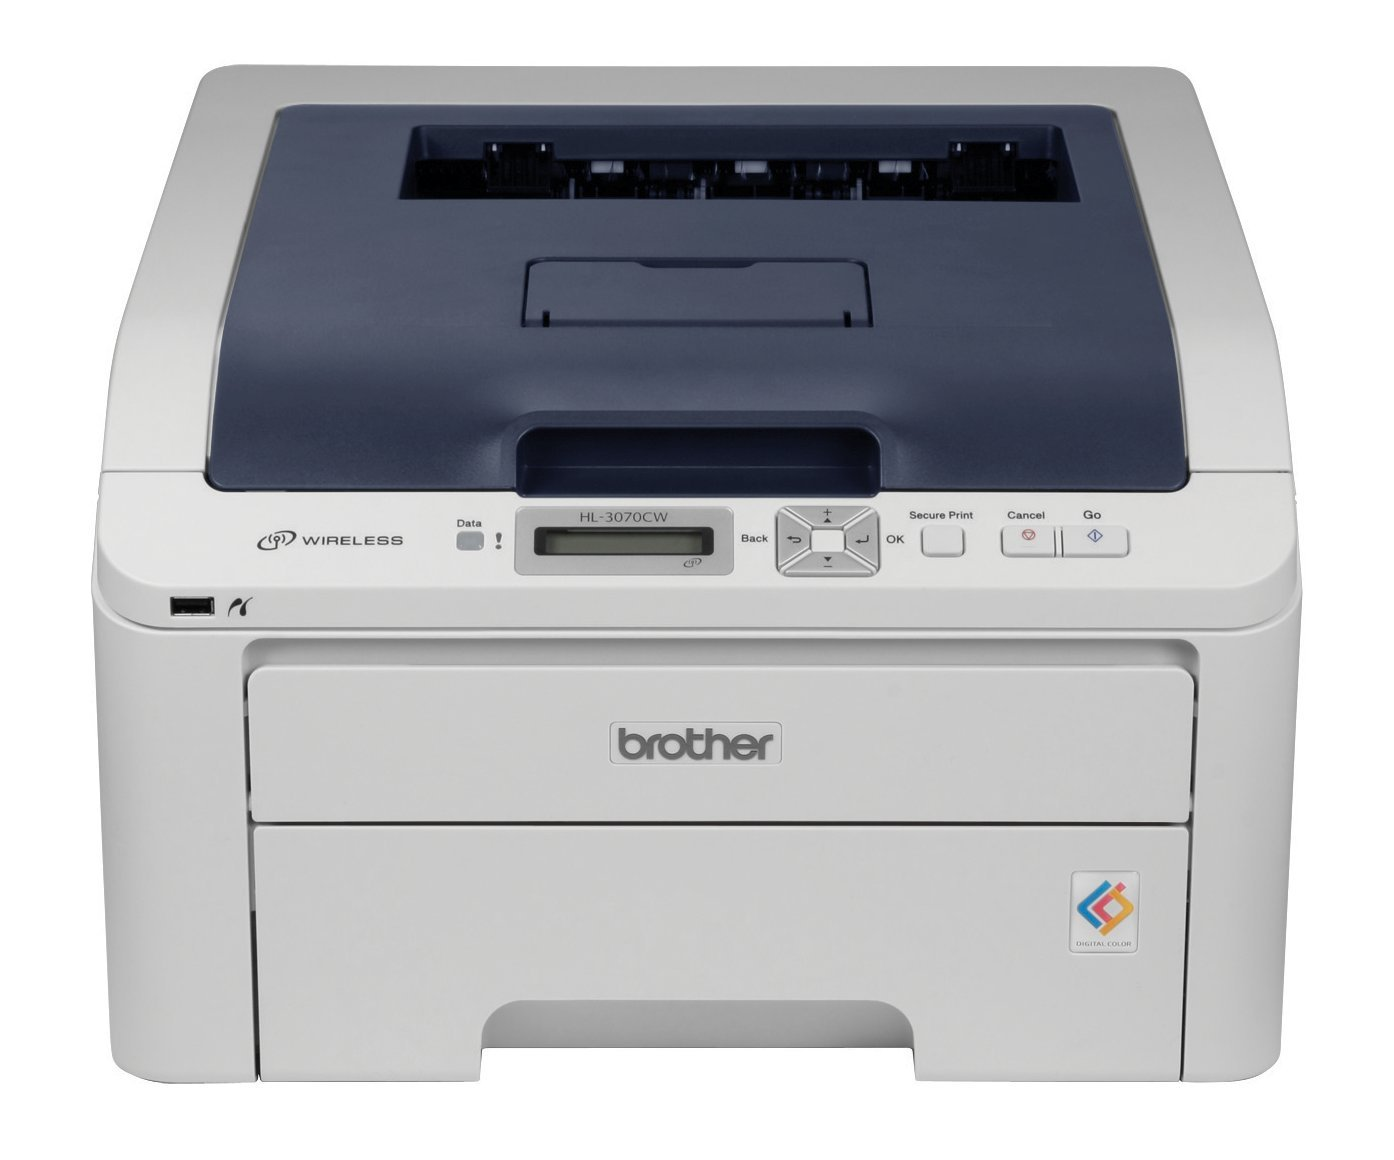 Color printing cost per page in india - Amazon In Buy Brother Hl 3070cw Printer Online At Low Prices In India Brother Reviews Ratings Download Image Kinkos Color Printing Cost Per Page